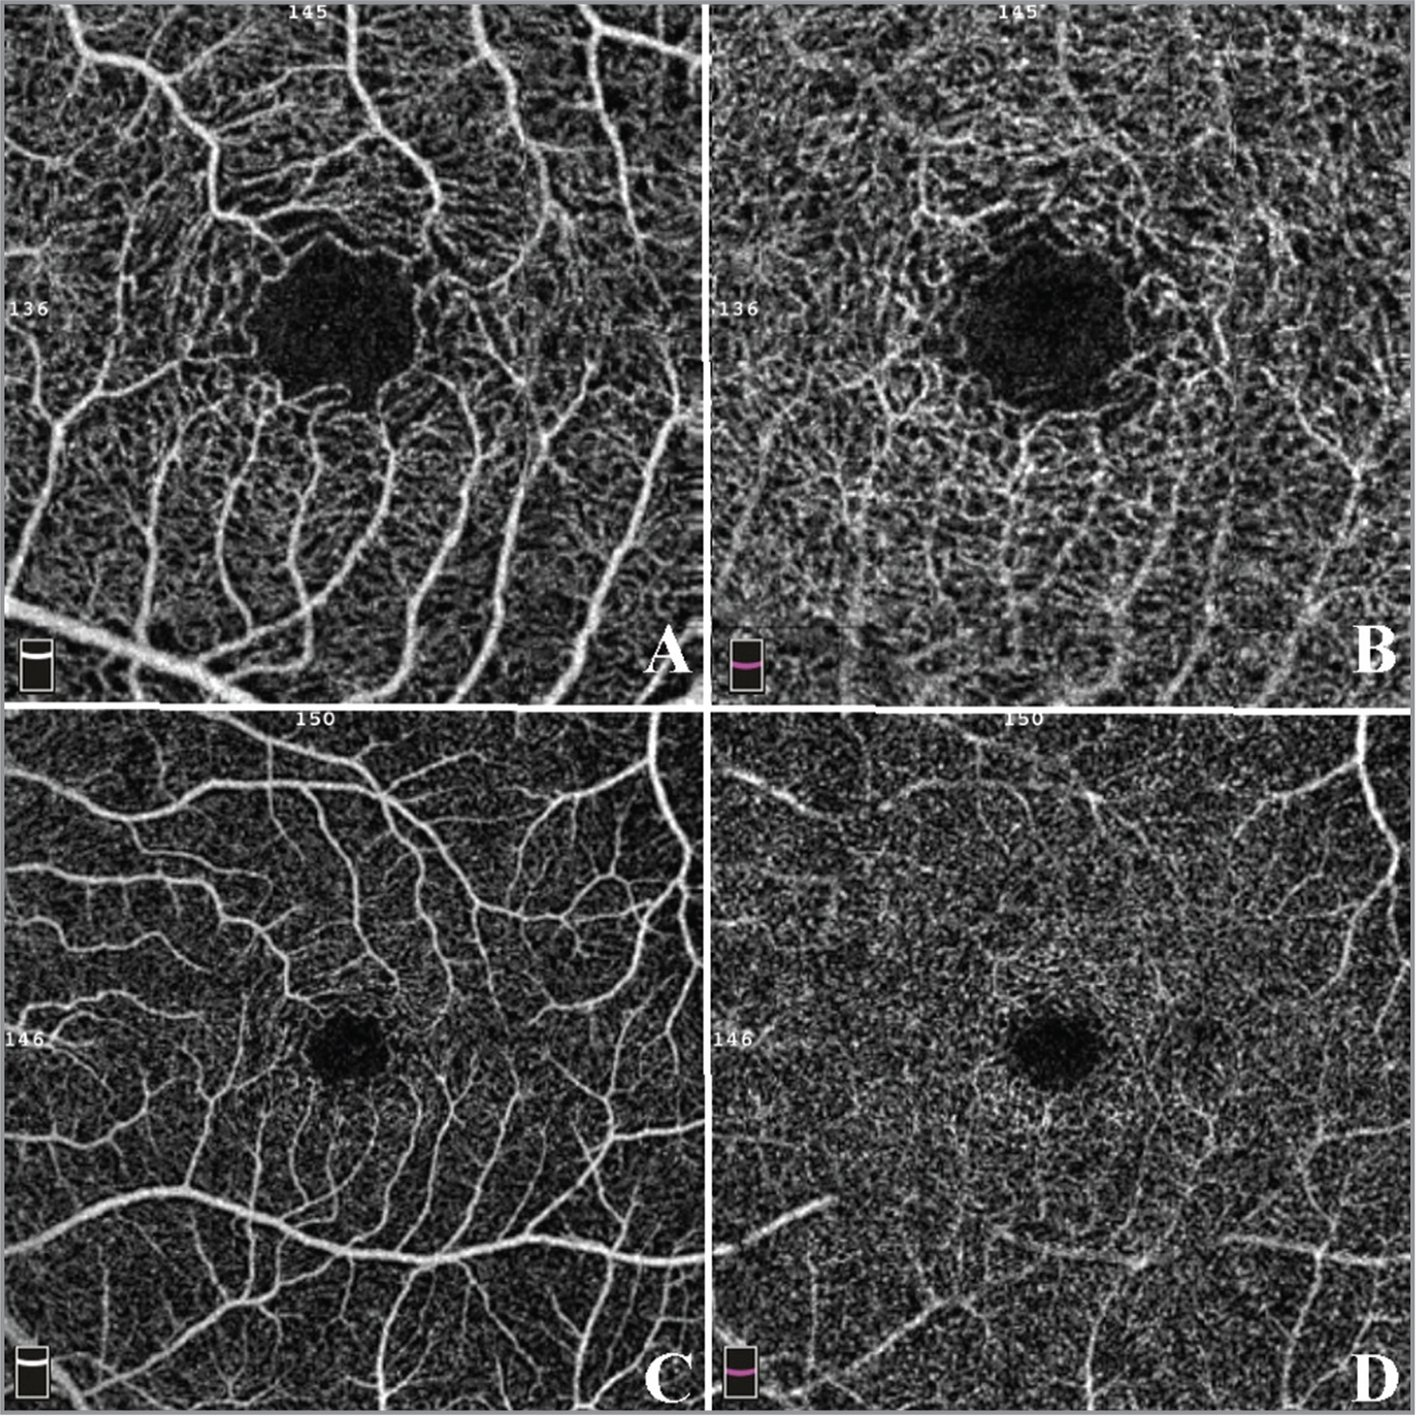 En face optical coherence tomography example of a patient with non-exudative age-related macular degeneration with no vascular abnormalities. (A) 3 × 3 superficial capillaries area. (B) 3 × 3 deep capillaries area. (C) 6 × 6 superficial capillaries area. (D) 6 × 6 deep capillaries area.